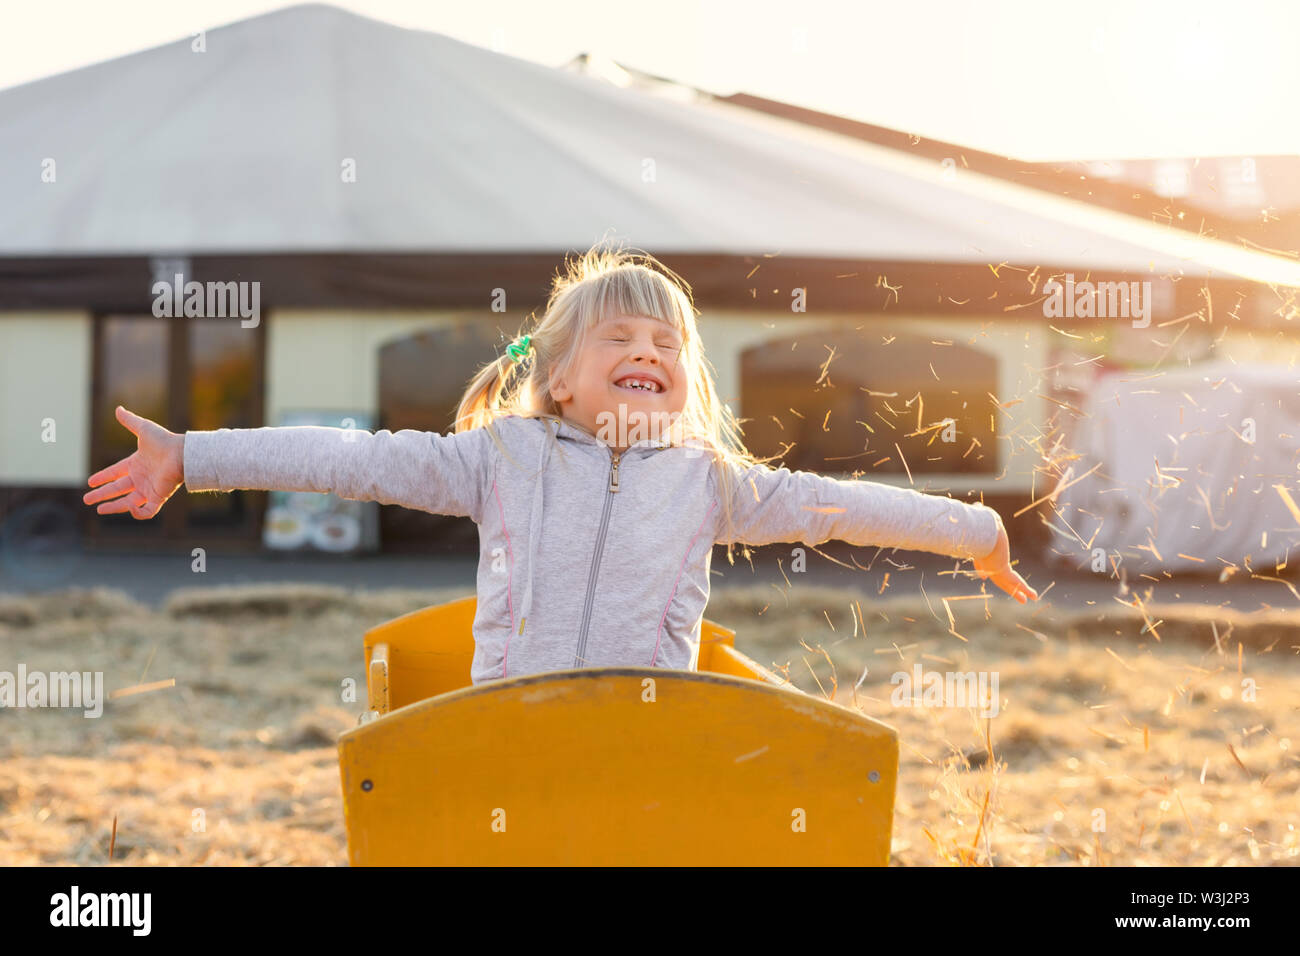 Adorable cute caucasian blond kid girl sitting in wooden cart having fun throwing straw or hay at farm or park during warm autumn evening. Happy Stock Photo